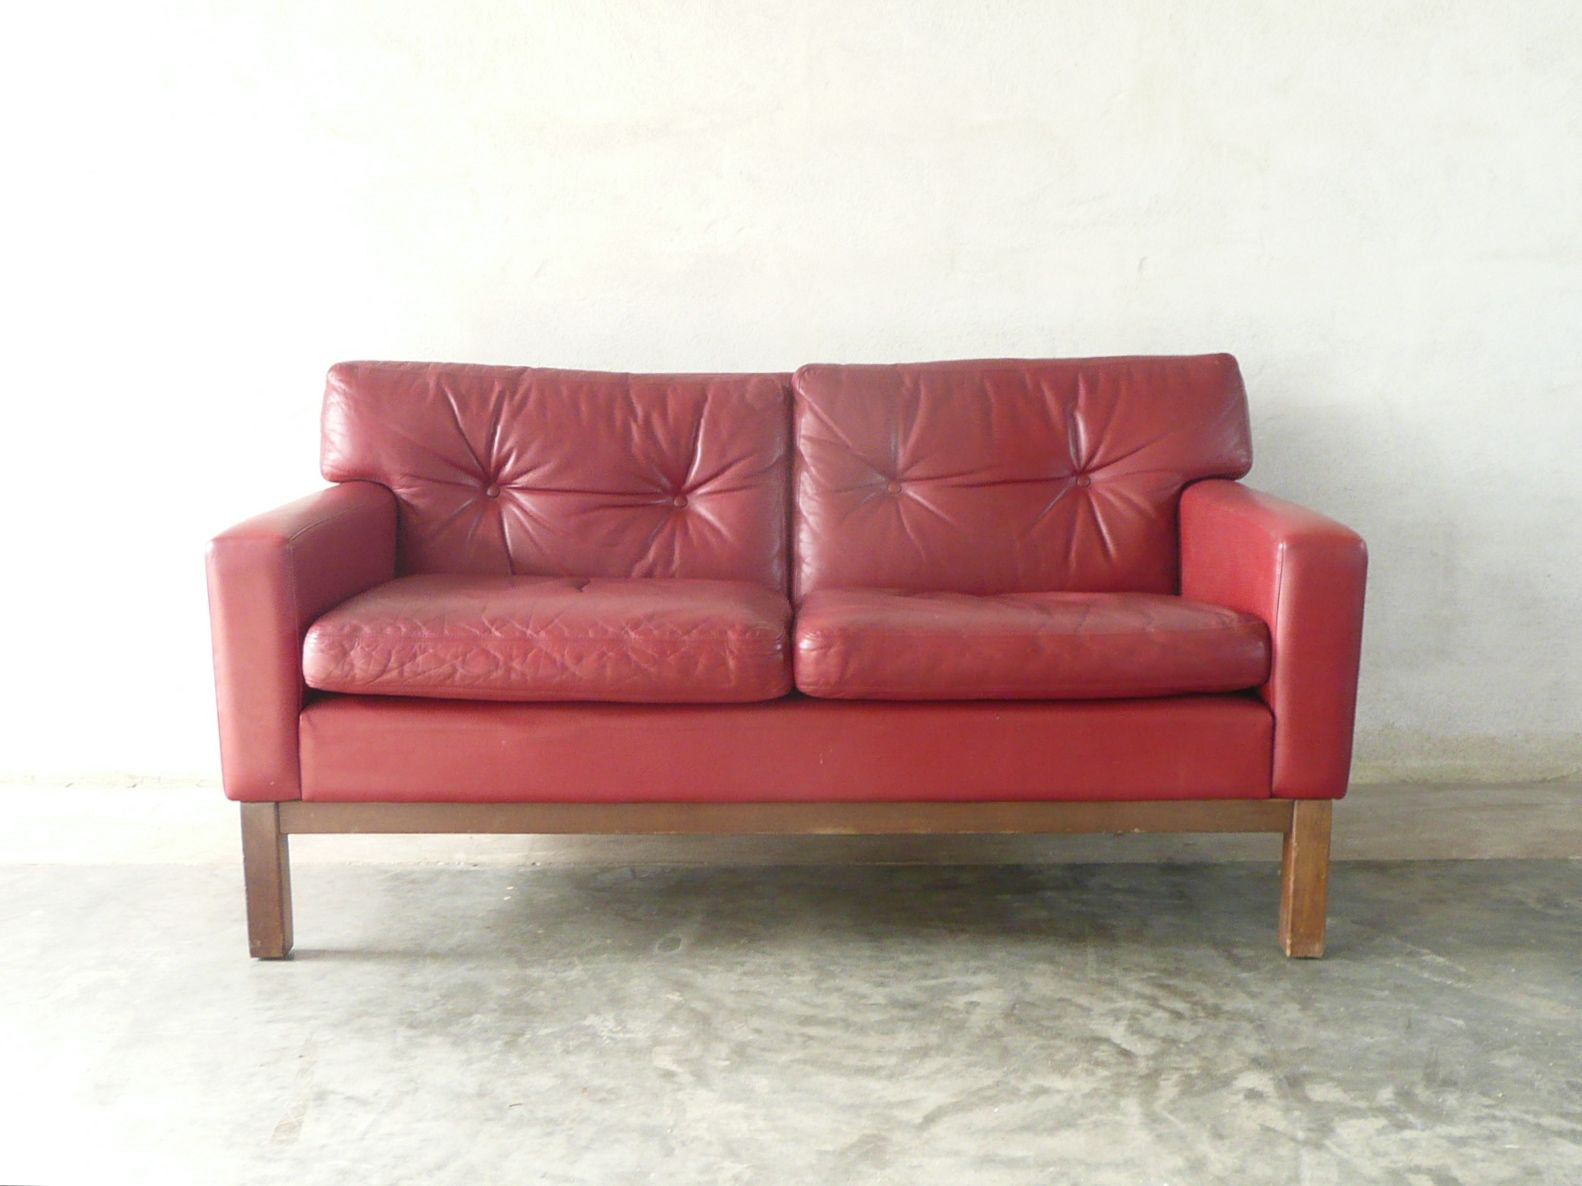 Chase & Sorensen New price: Finnish two seat leather sofa